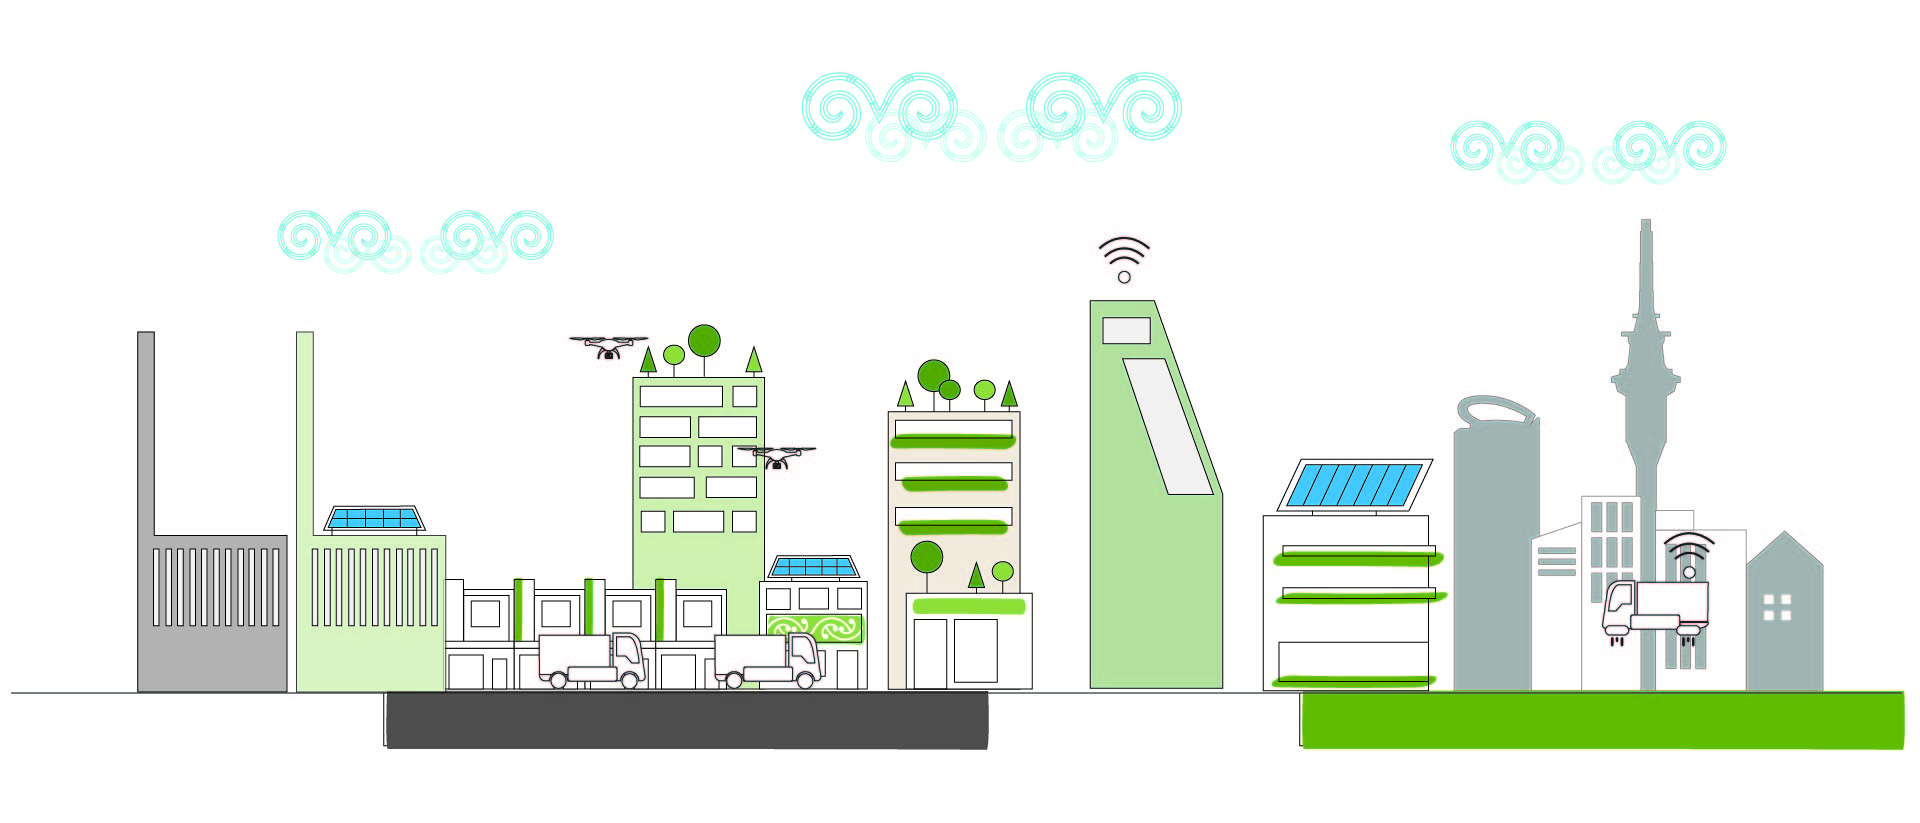 Illustration of future central Auckland with buildings that have solar panels, green roofs, and electric vehicles.